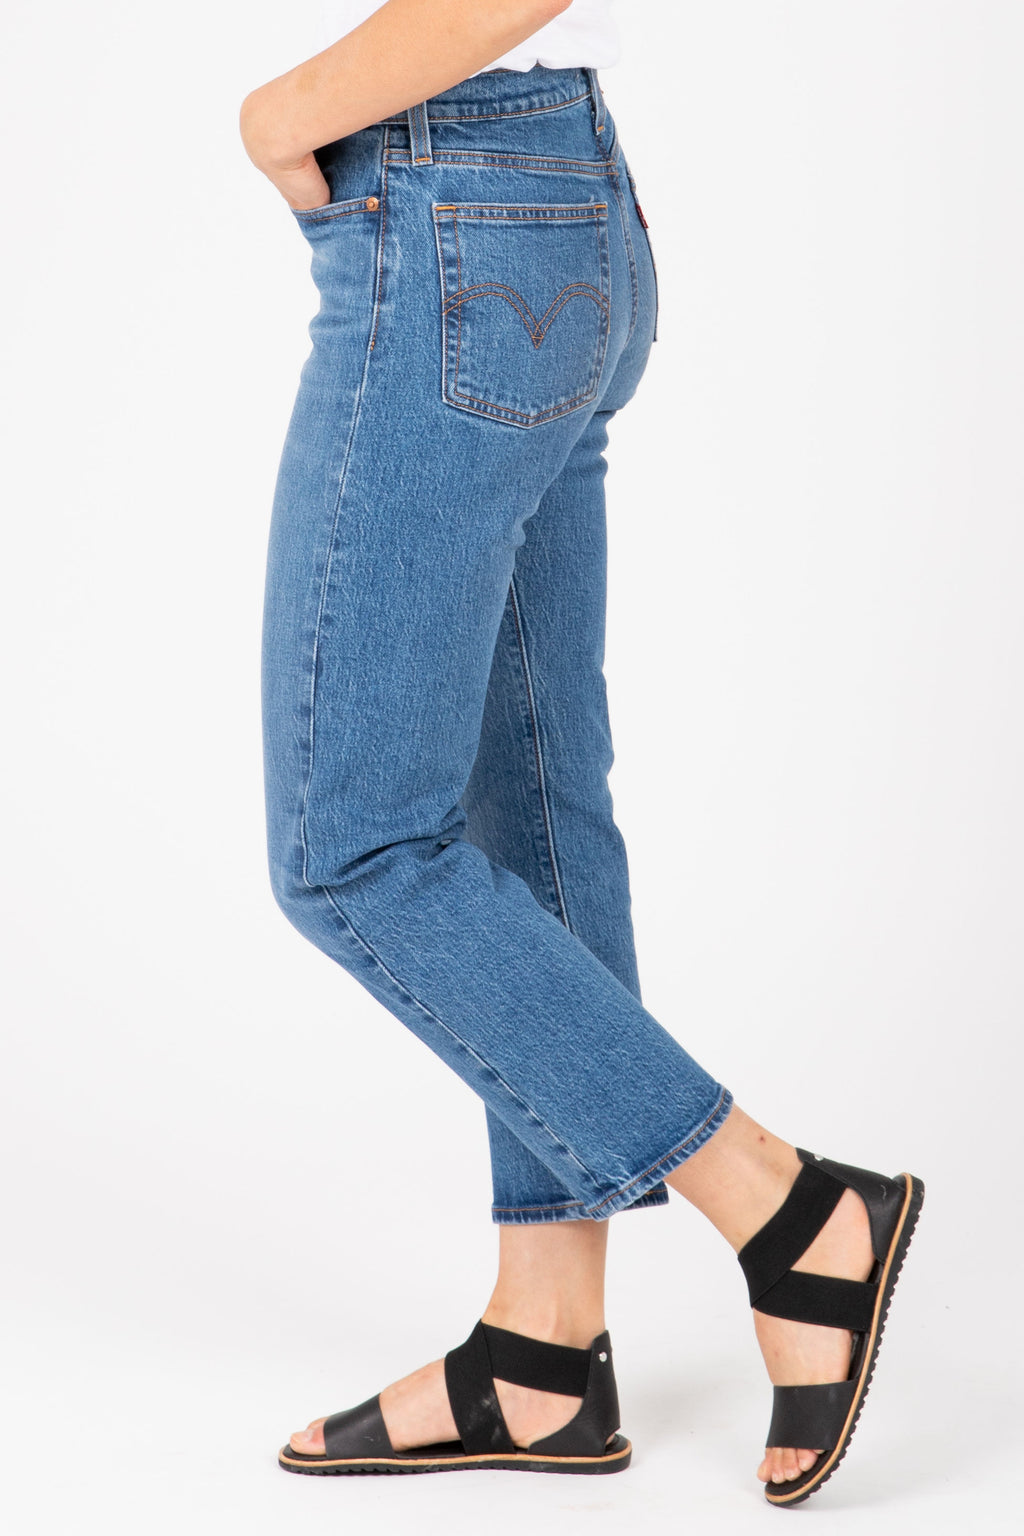 Levi's: Wedgie Fit Straight Jeans in Jive Sound Medium Wash, studio shoot; side view